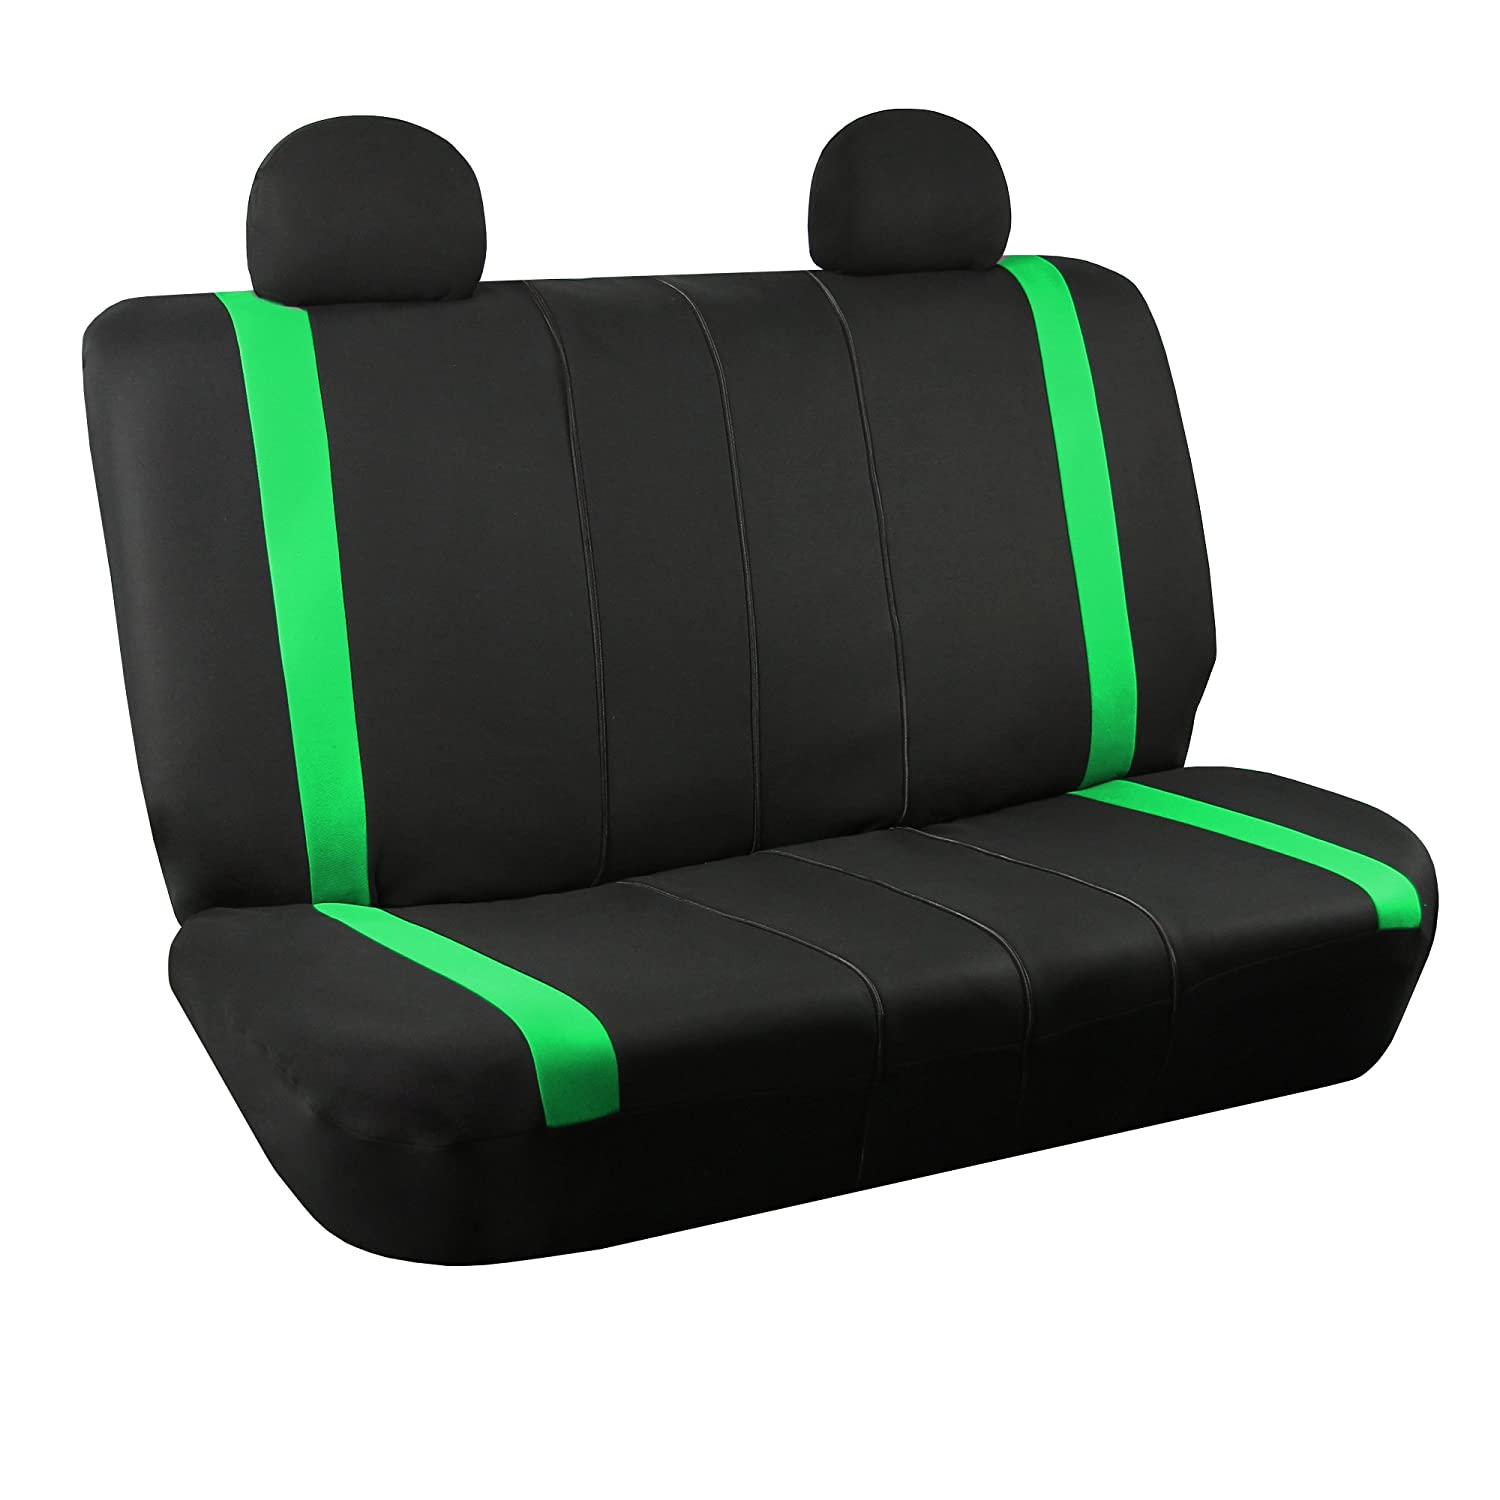 w. 4 Detachable Headrests and Solid Bench FH Group FB032GREEN114 Green Unique Flat Cloth Car Seat Cover